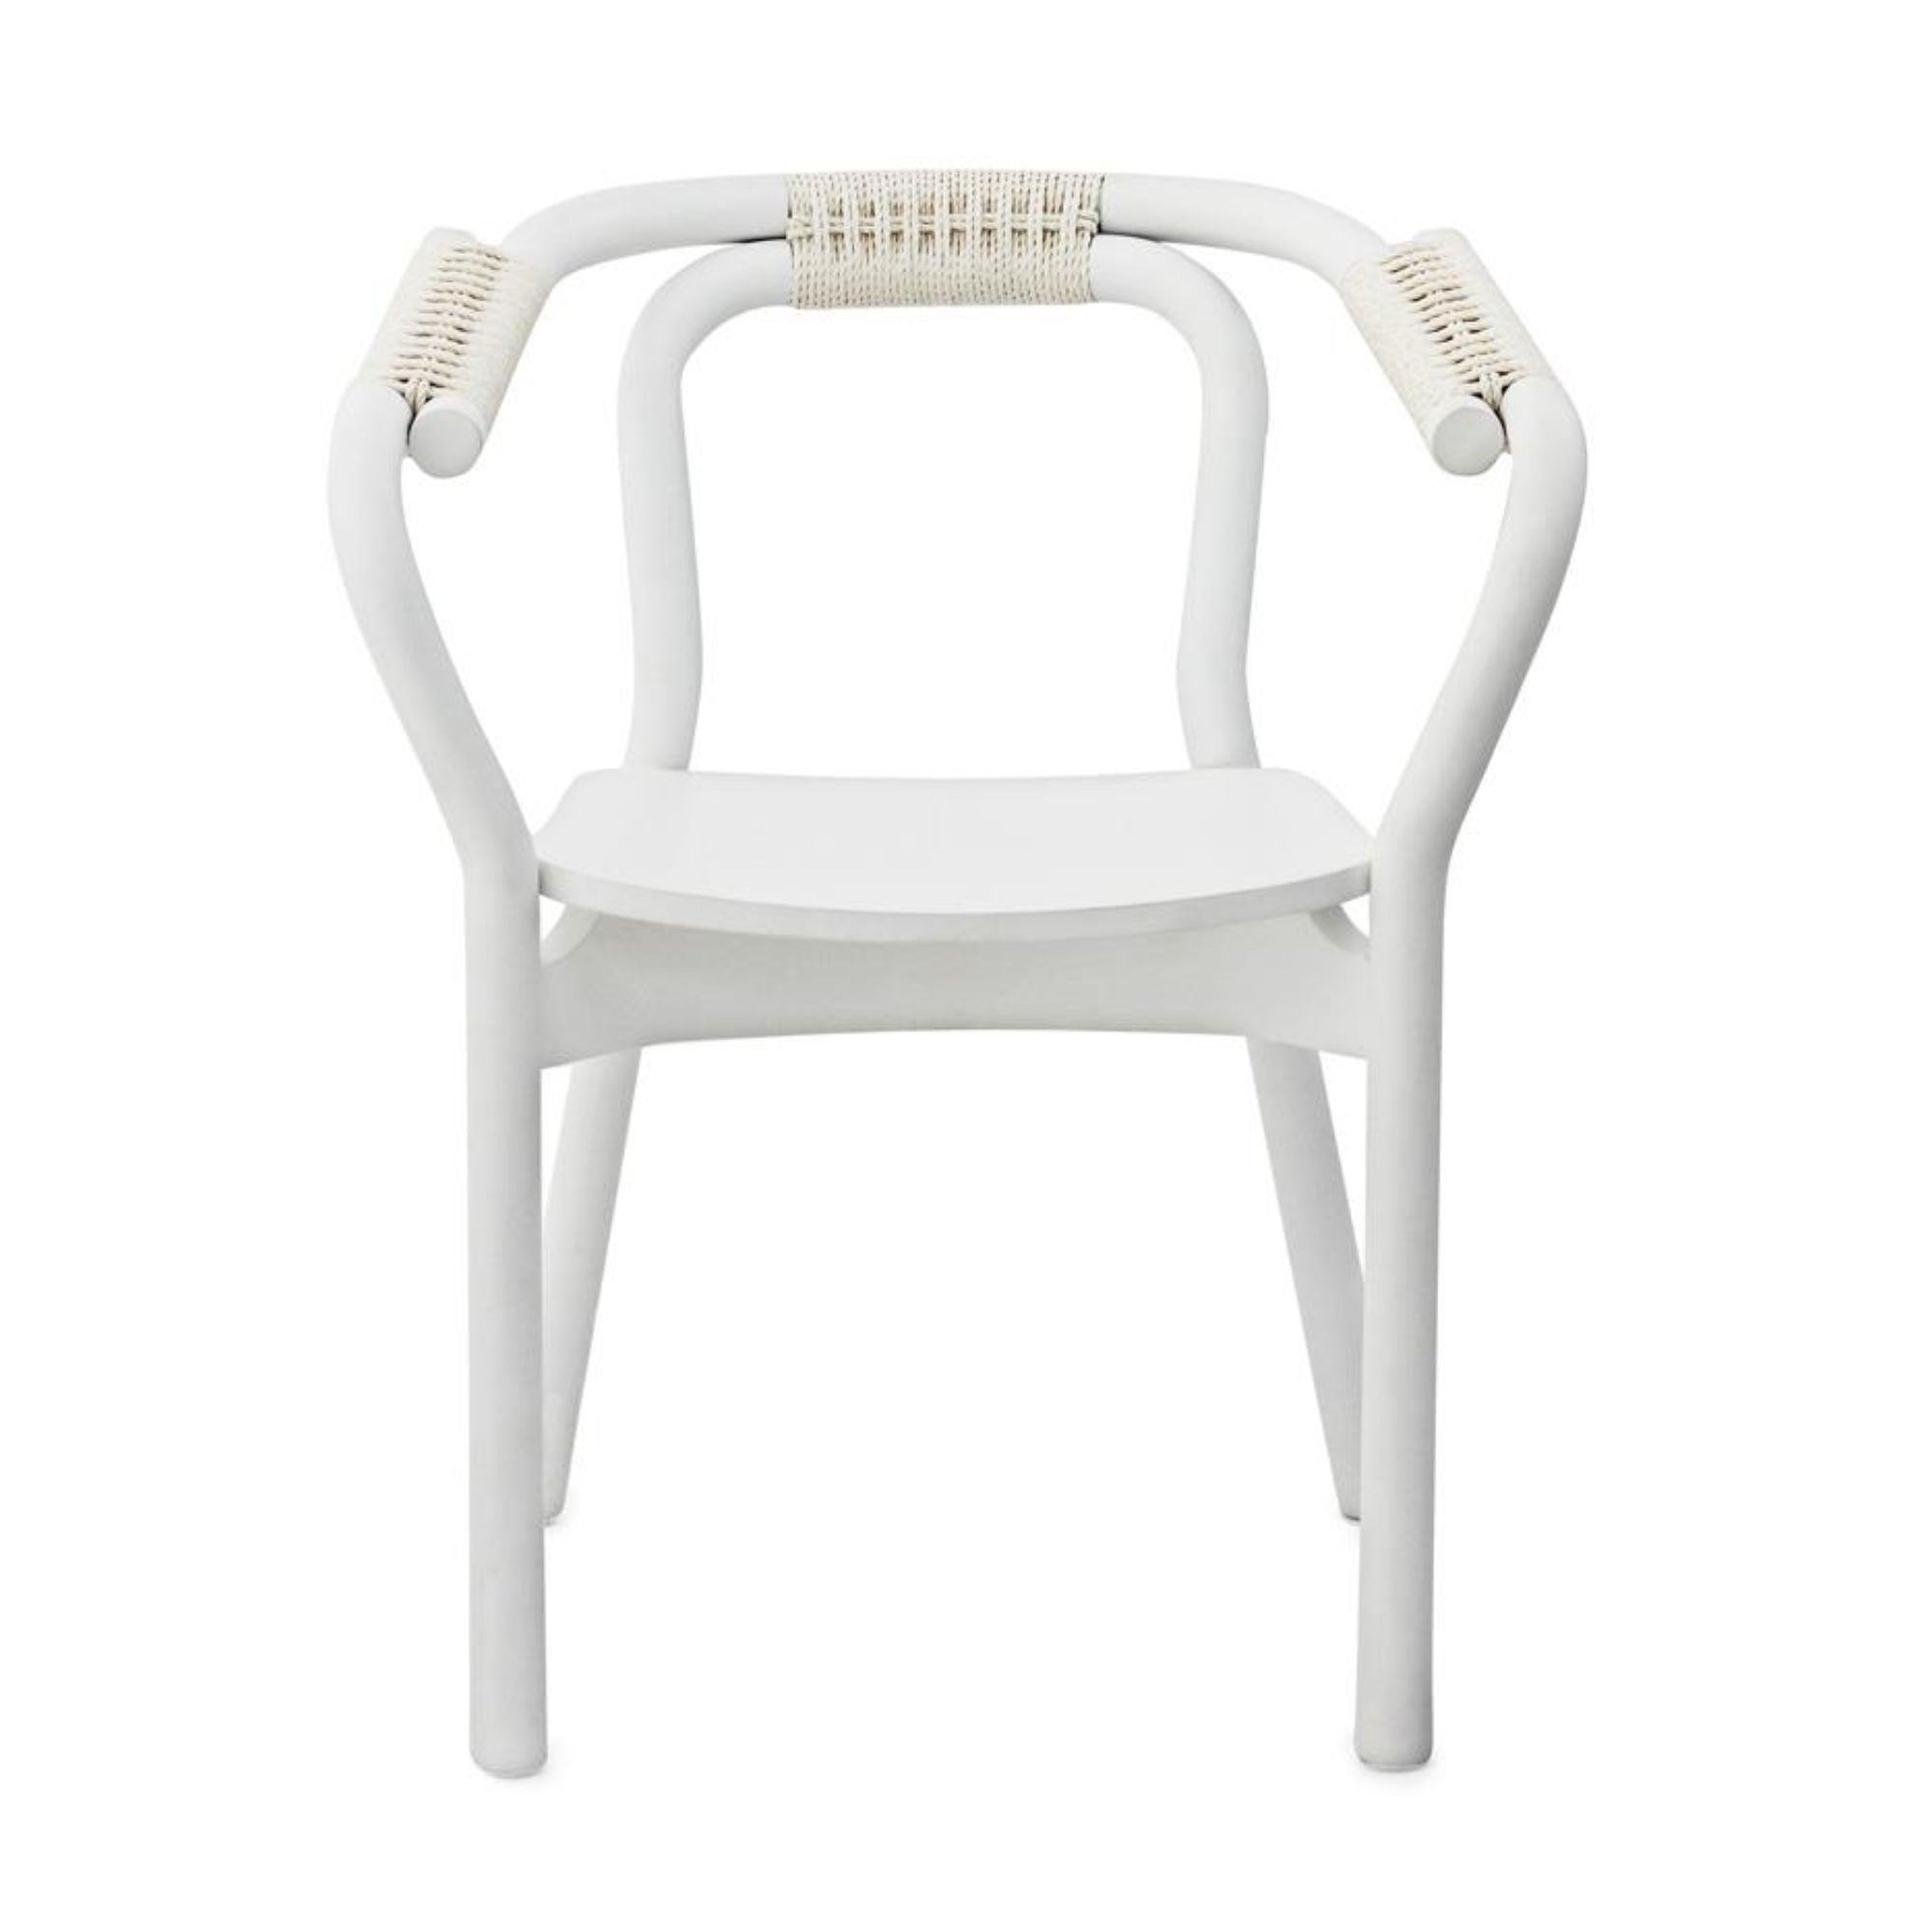 Normann Copenhagen Knot Chair , White - White